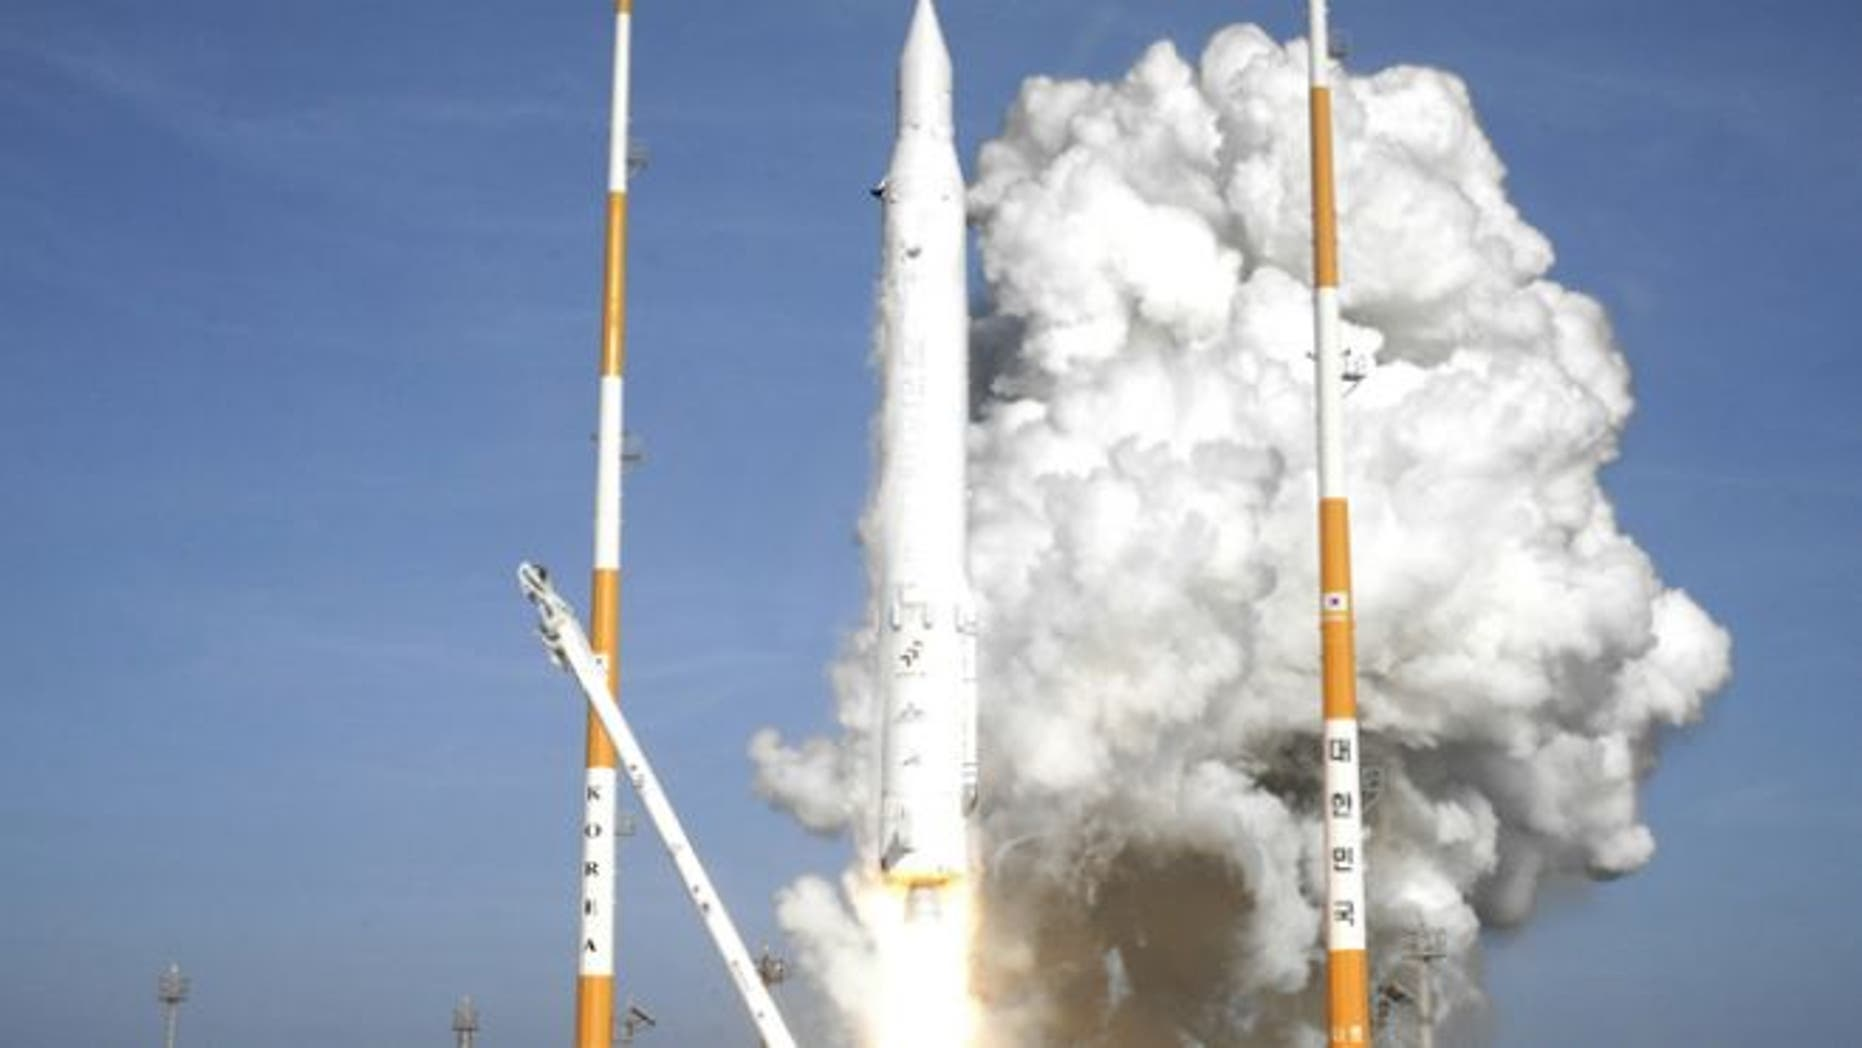 Jan. 30, 2013: South Korea's rocket lifts off from its launch pad at the Naro Space Center in Goheung, South Korea.